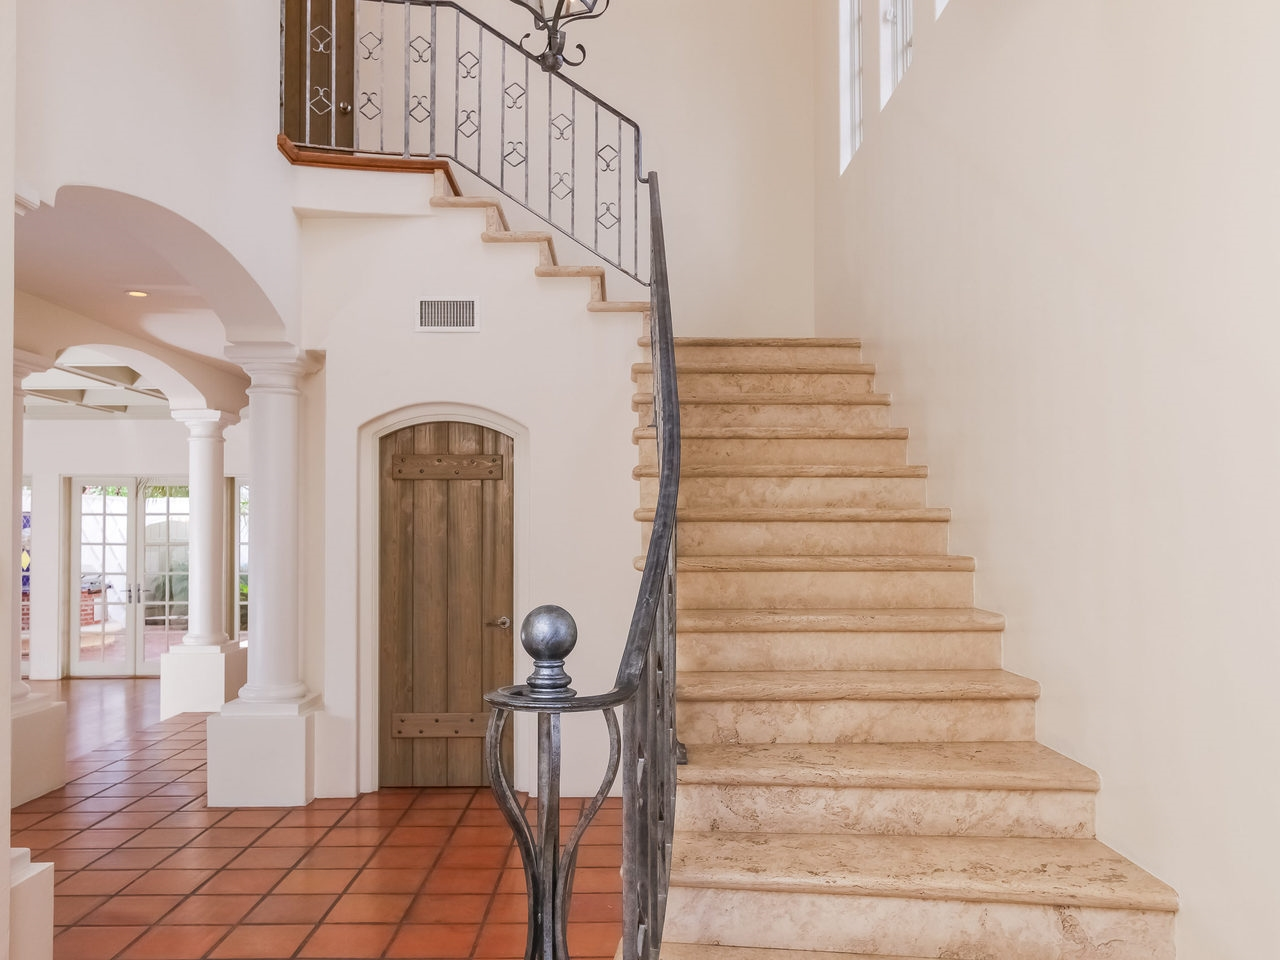 Detached, Mediterranean/Spanish - Coronado, CA (photo 5)